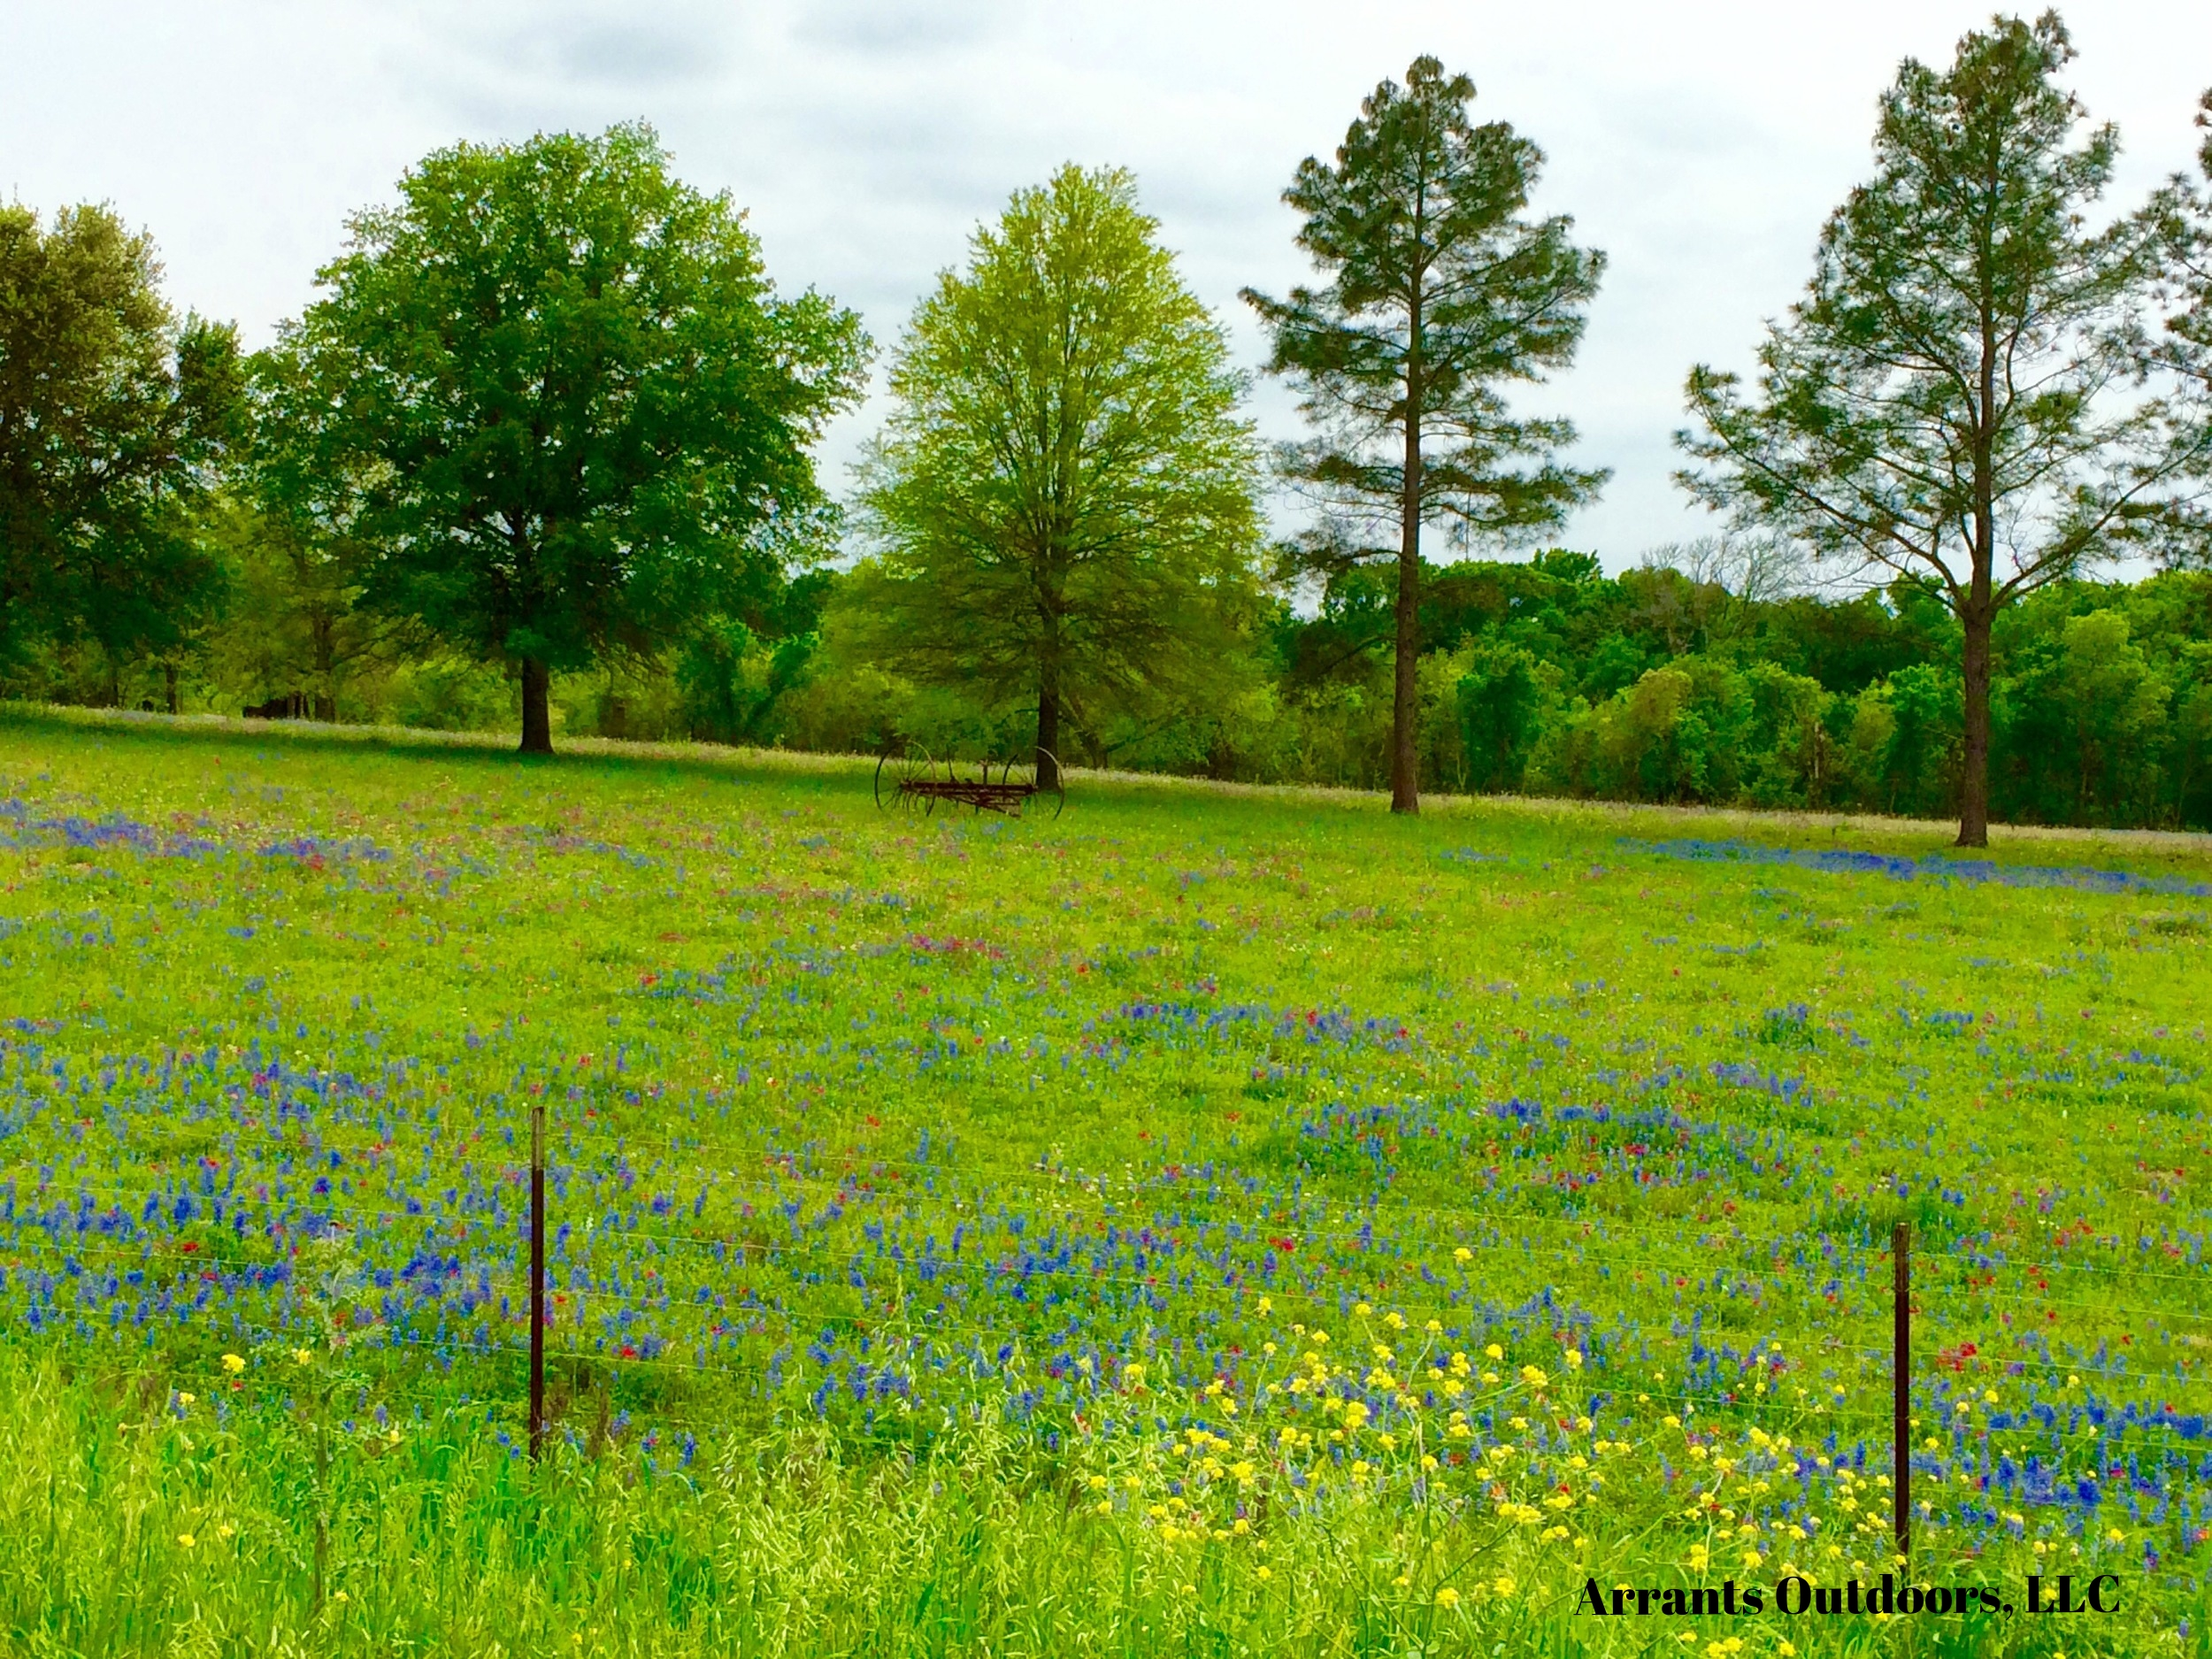 Forgive me, but I thought I'd get a little artistic with this photo to relay a little of the sheer wonder and beauty of a simple scene of rural hill country Texas.  Striking small pasture filled with Texas Bluebonnets and Texas Paintbrushes... Bonnets and Brushes.                                  ( Click on photo to enlarge)